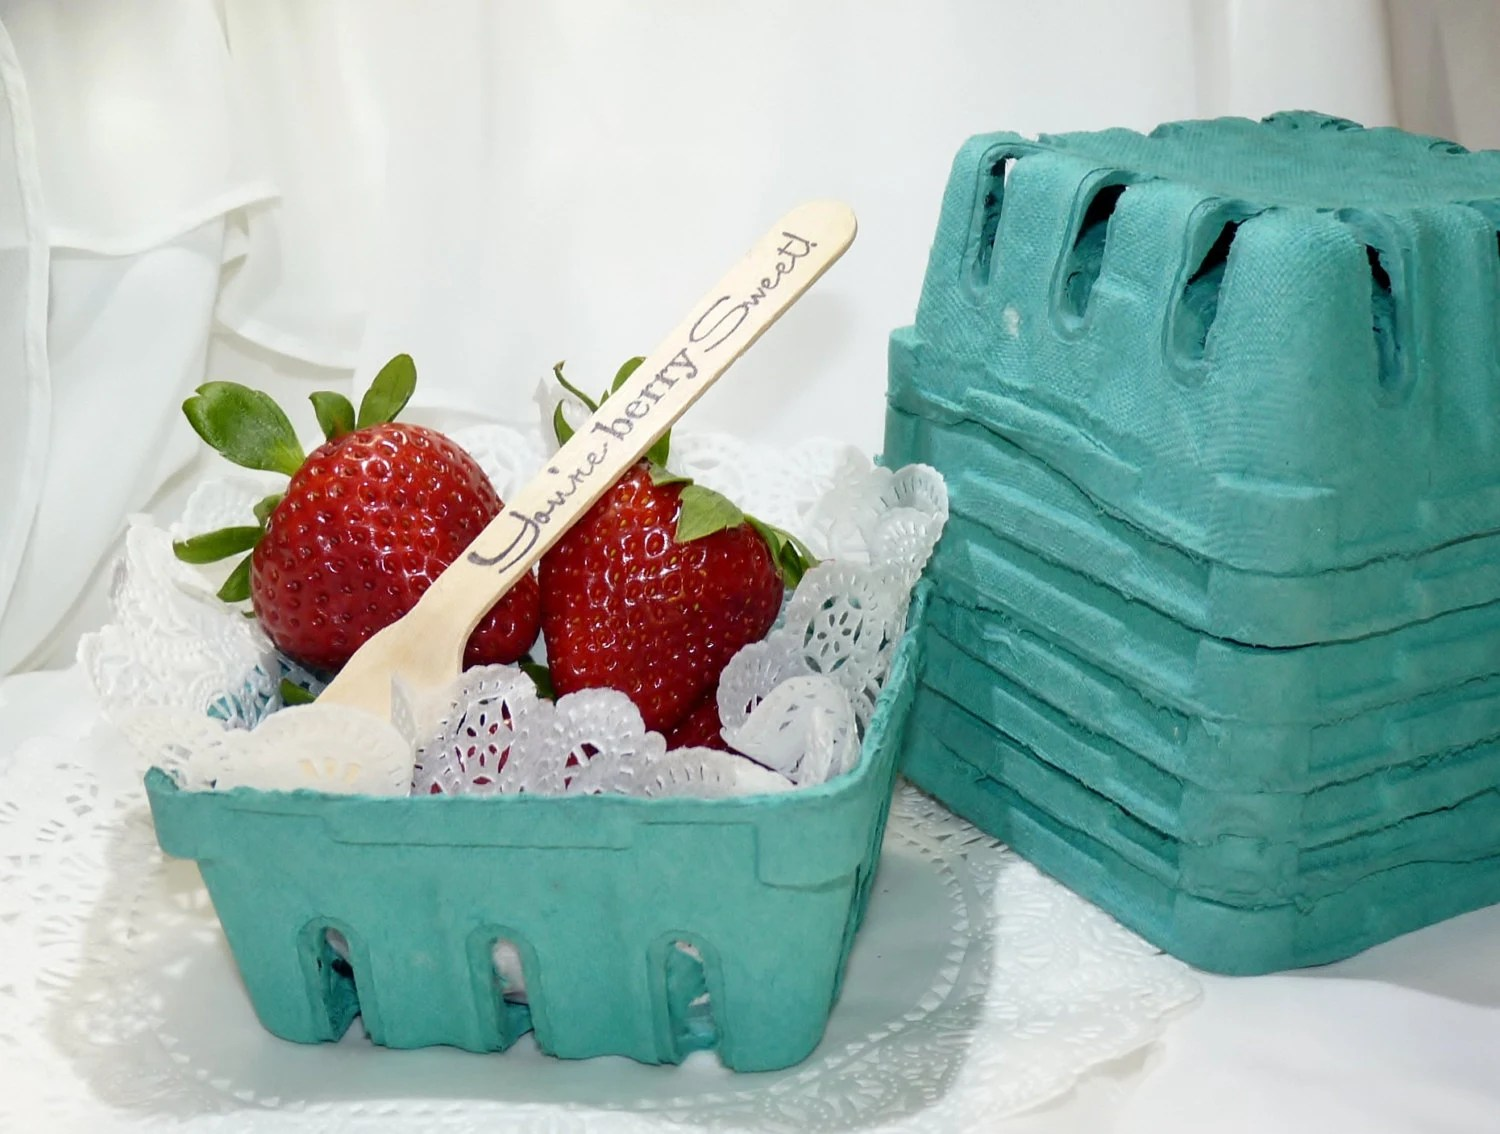 Berry Baskets 1/2 Pint Crates-12 Perfect Serving Size